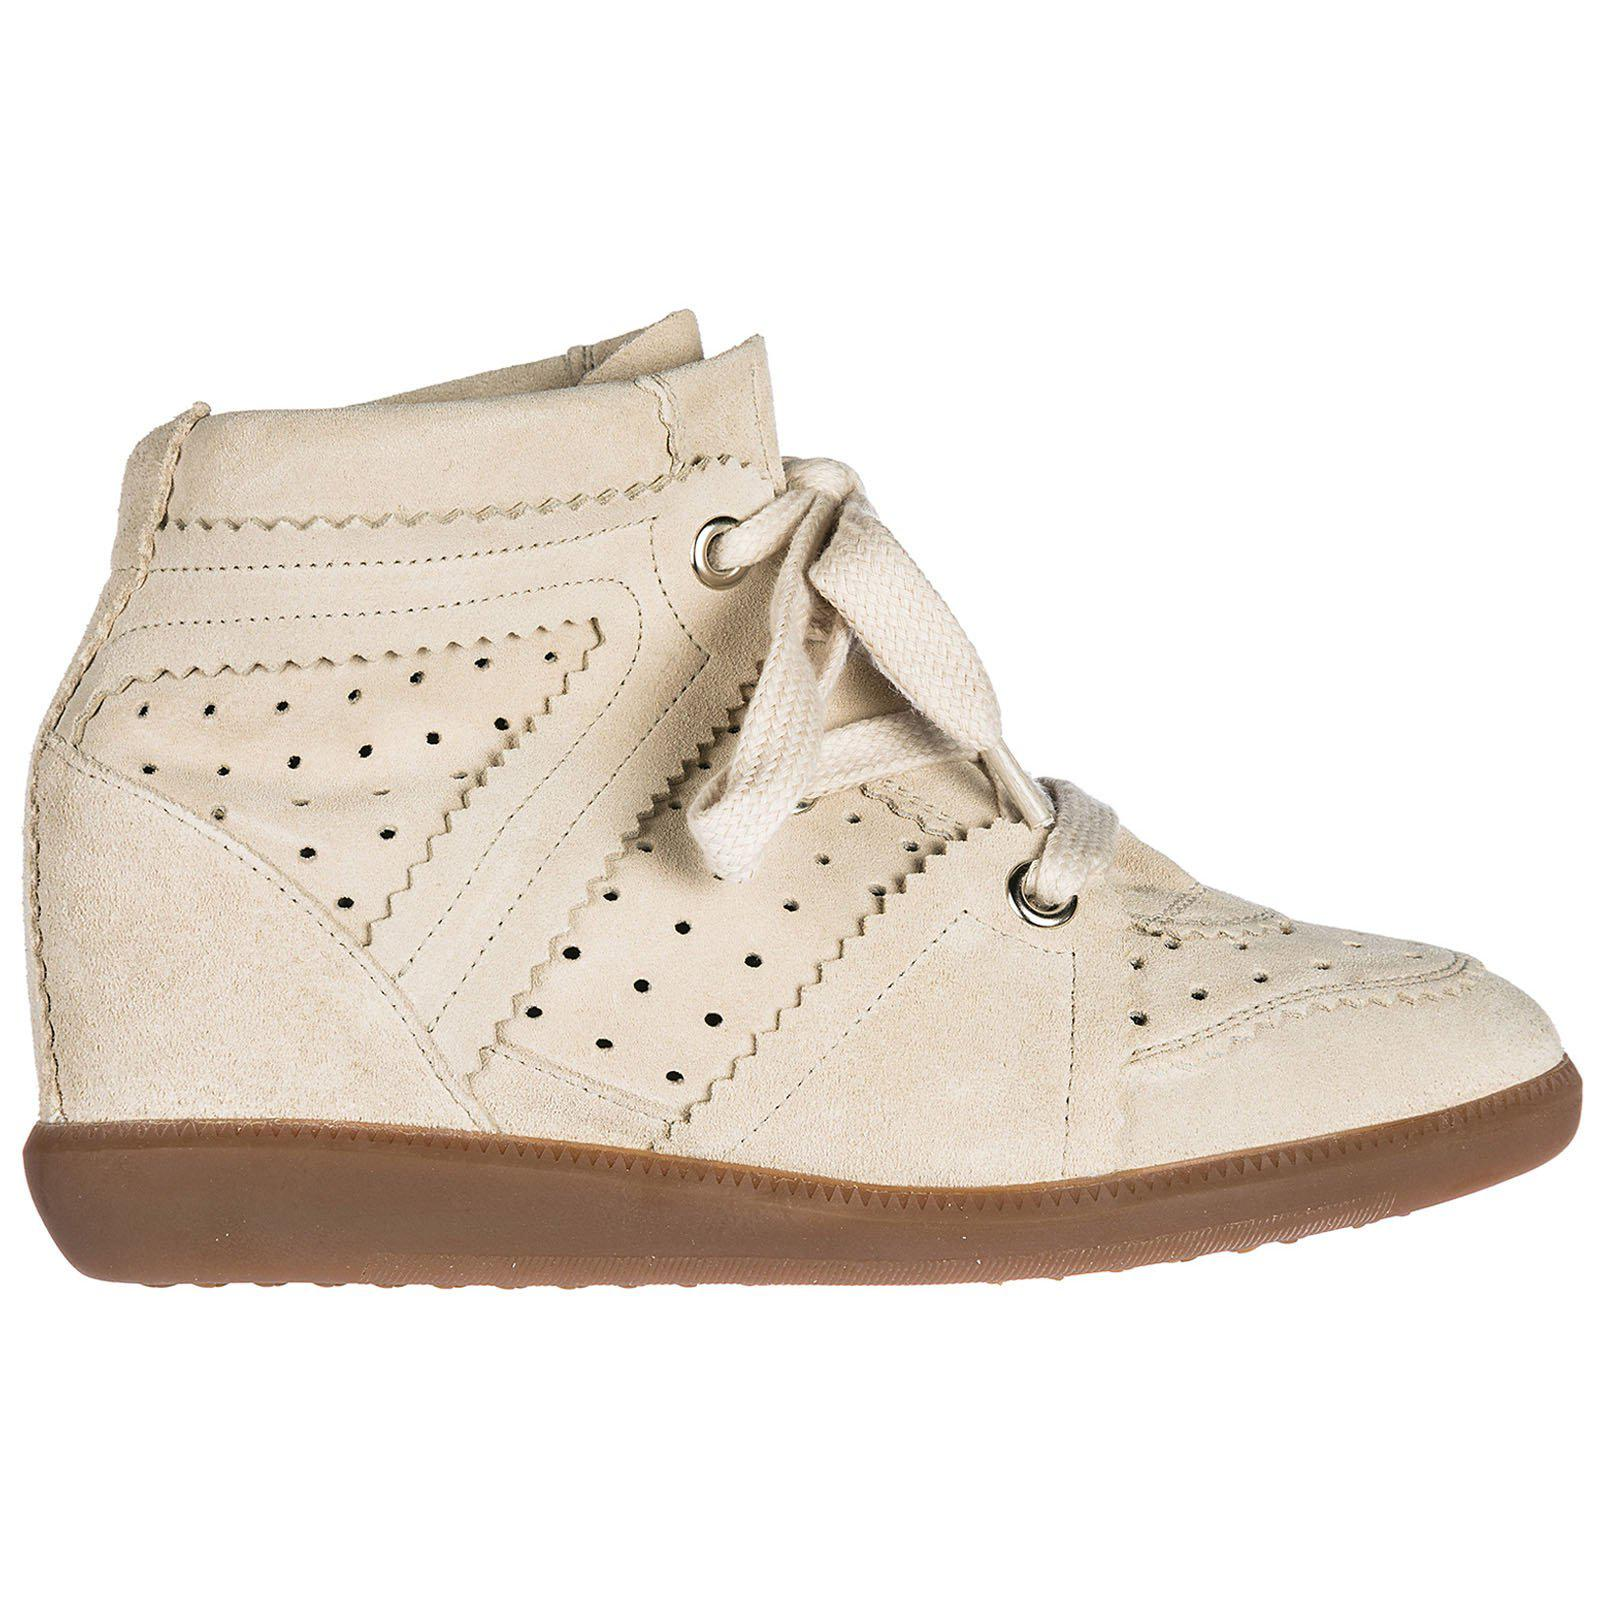 c90972f2f5 Isabel Marant Bobby Sneakers in Pink - Lyst